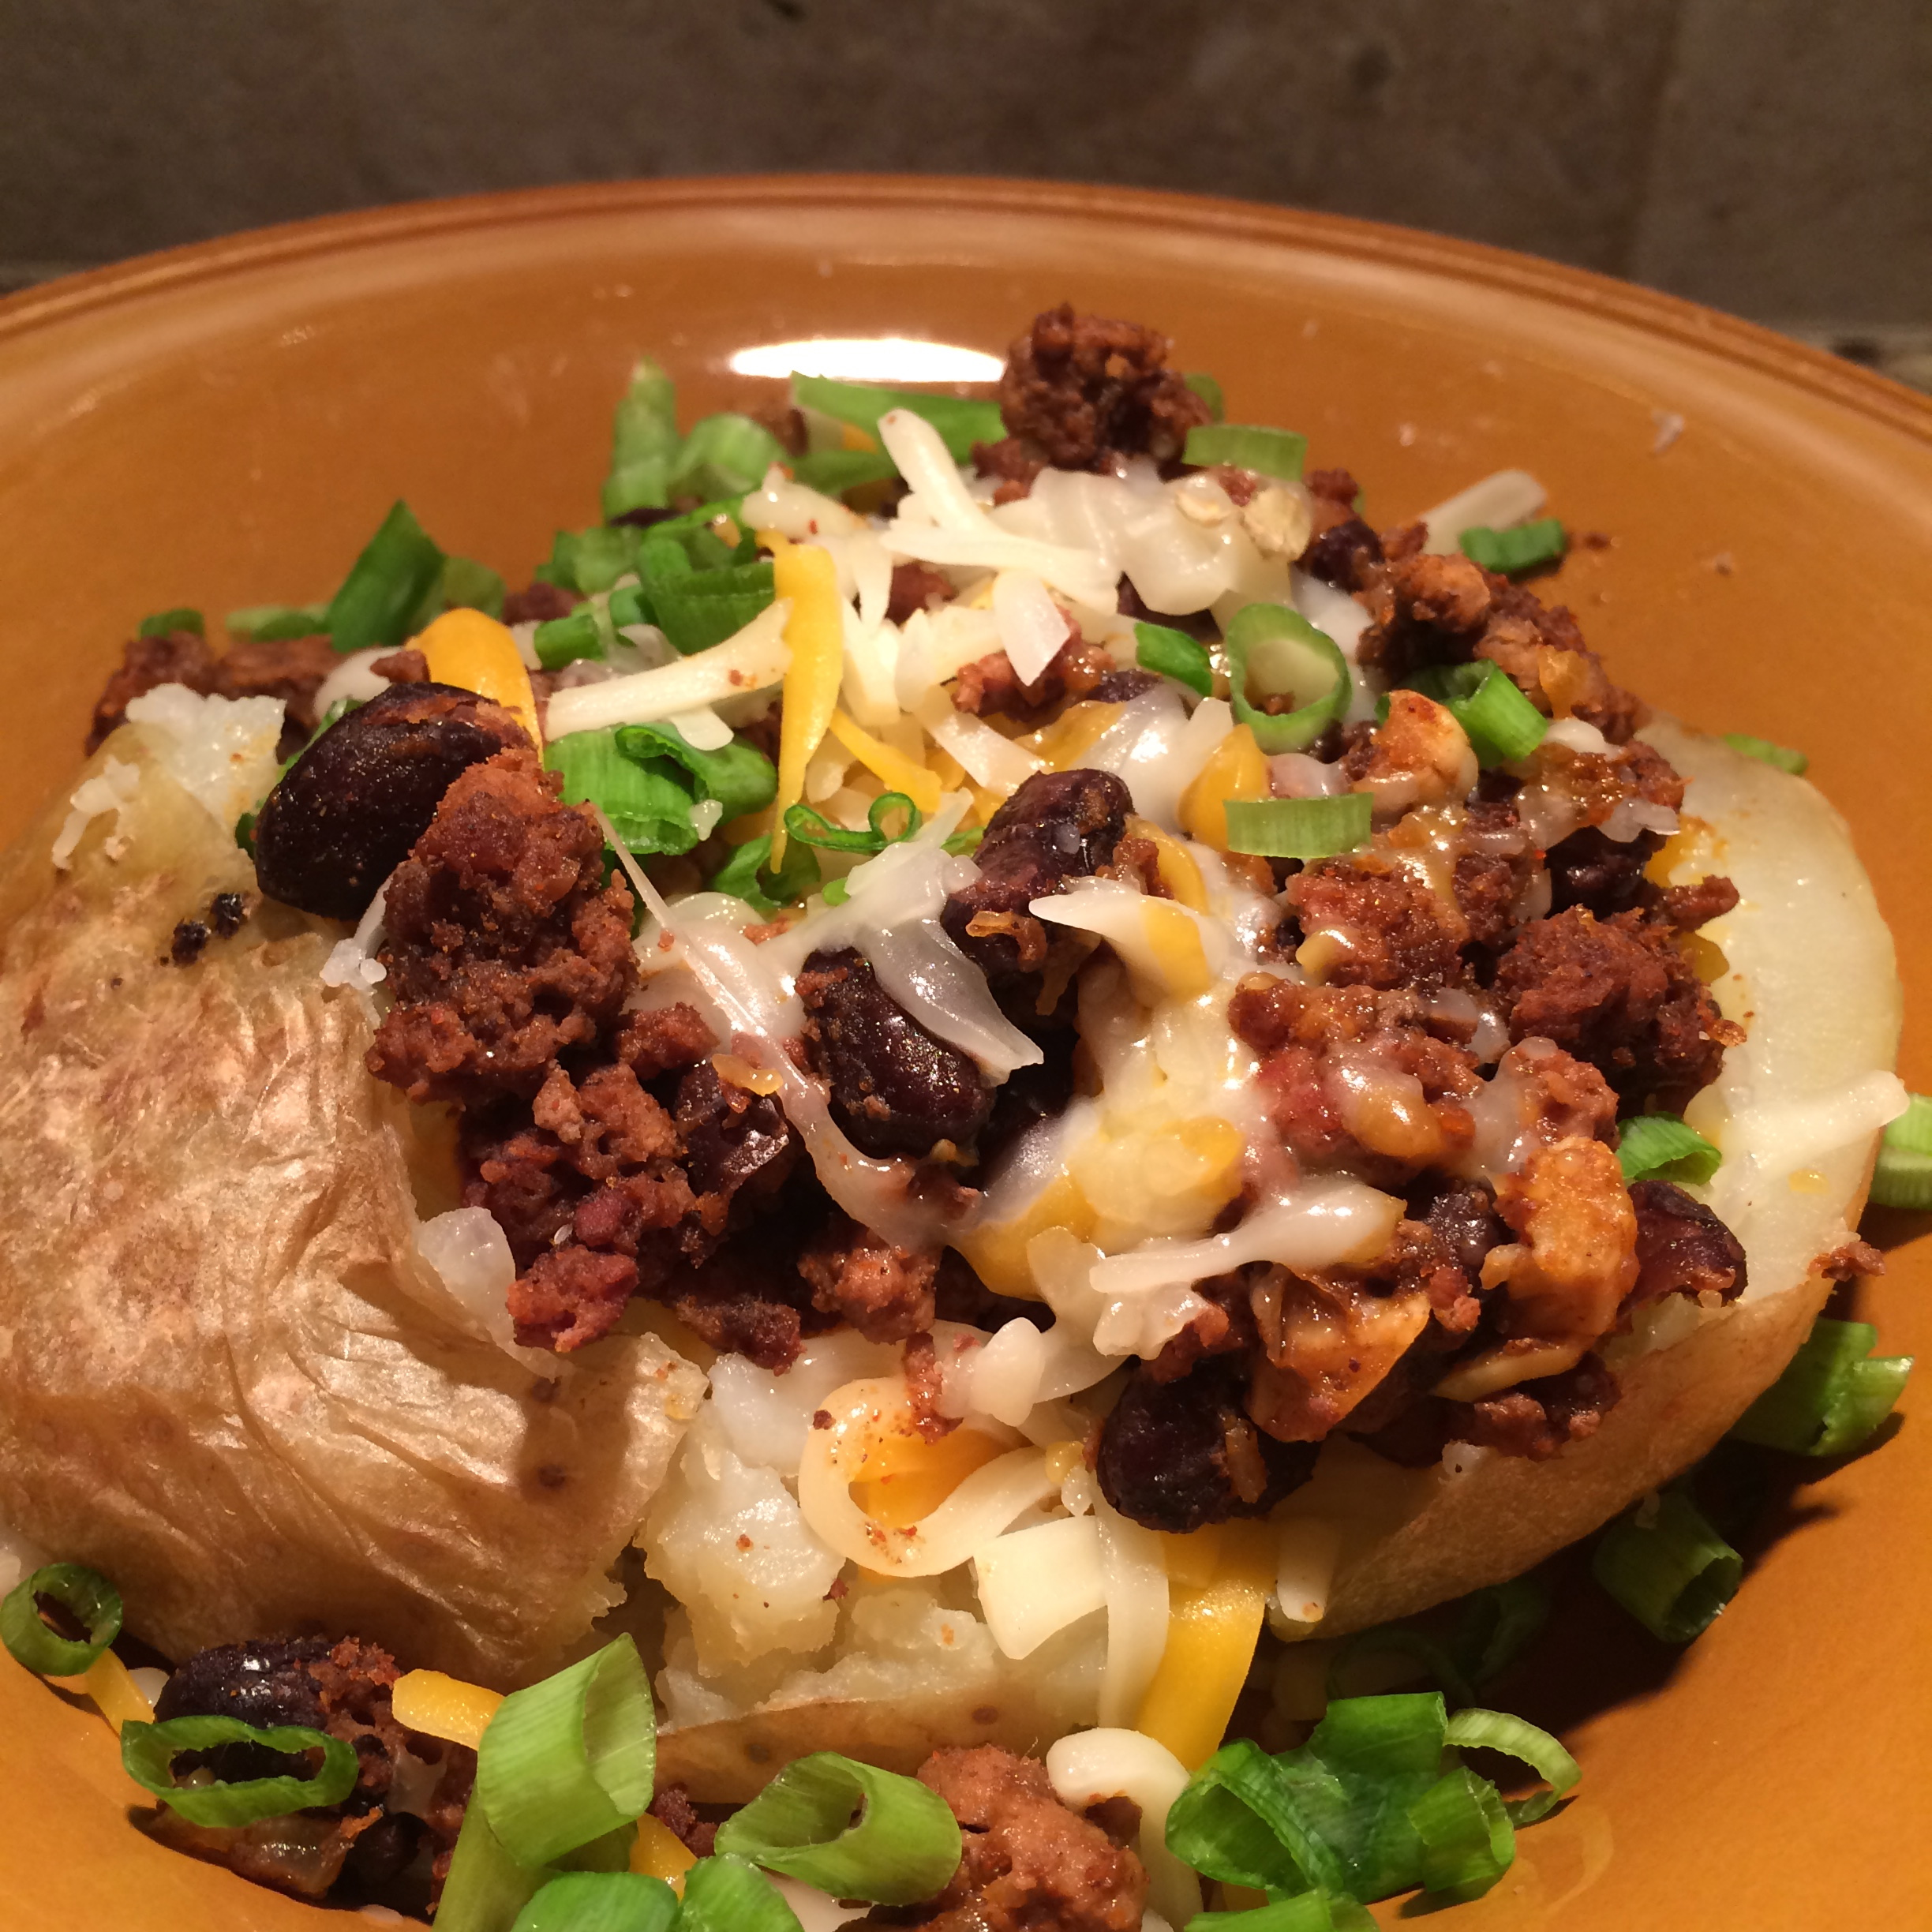 Taco Meat and Black Bean Baked Potato